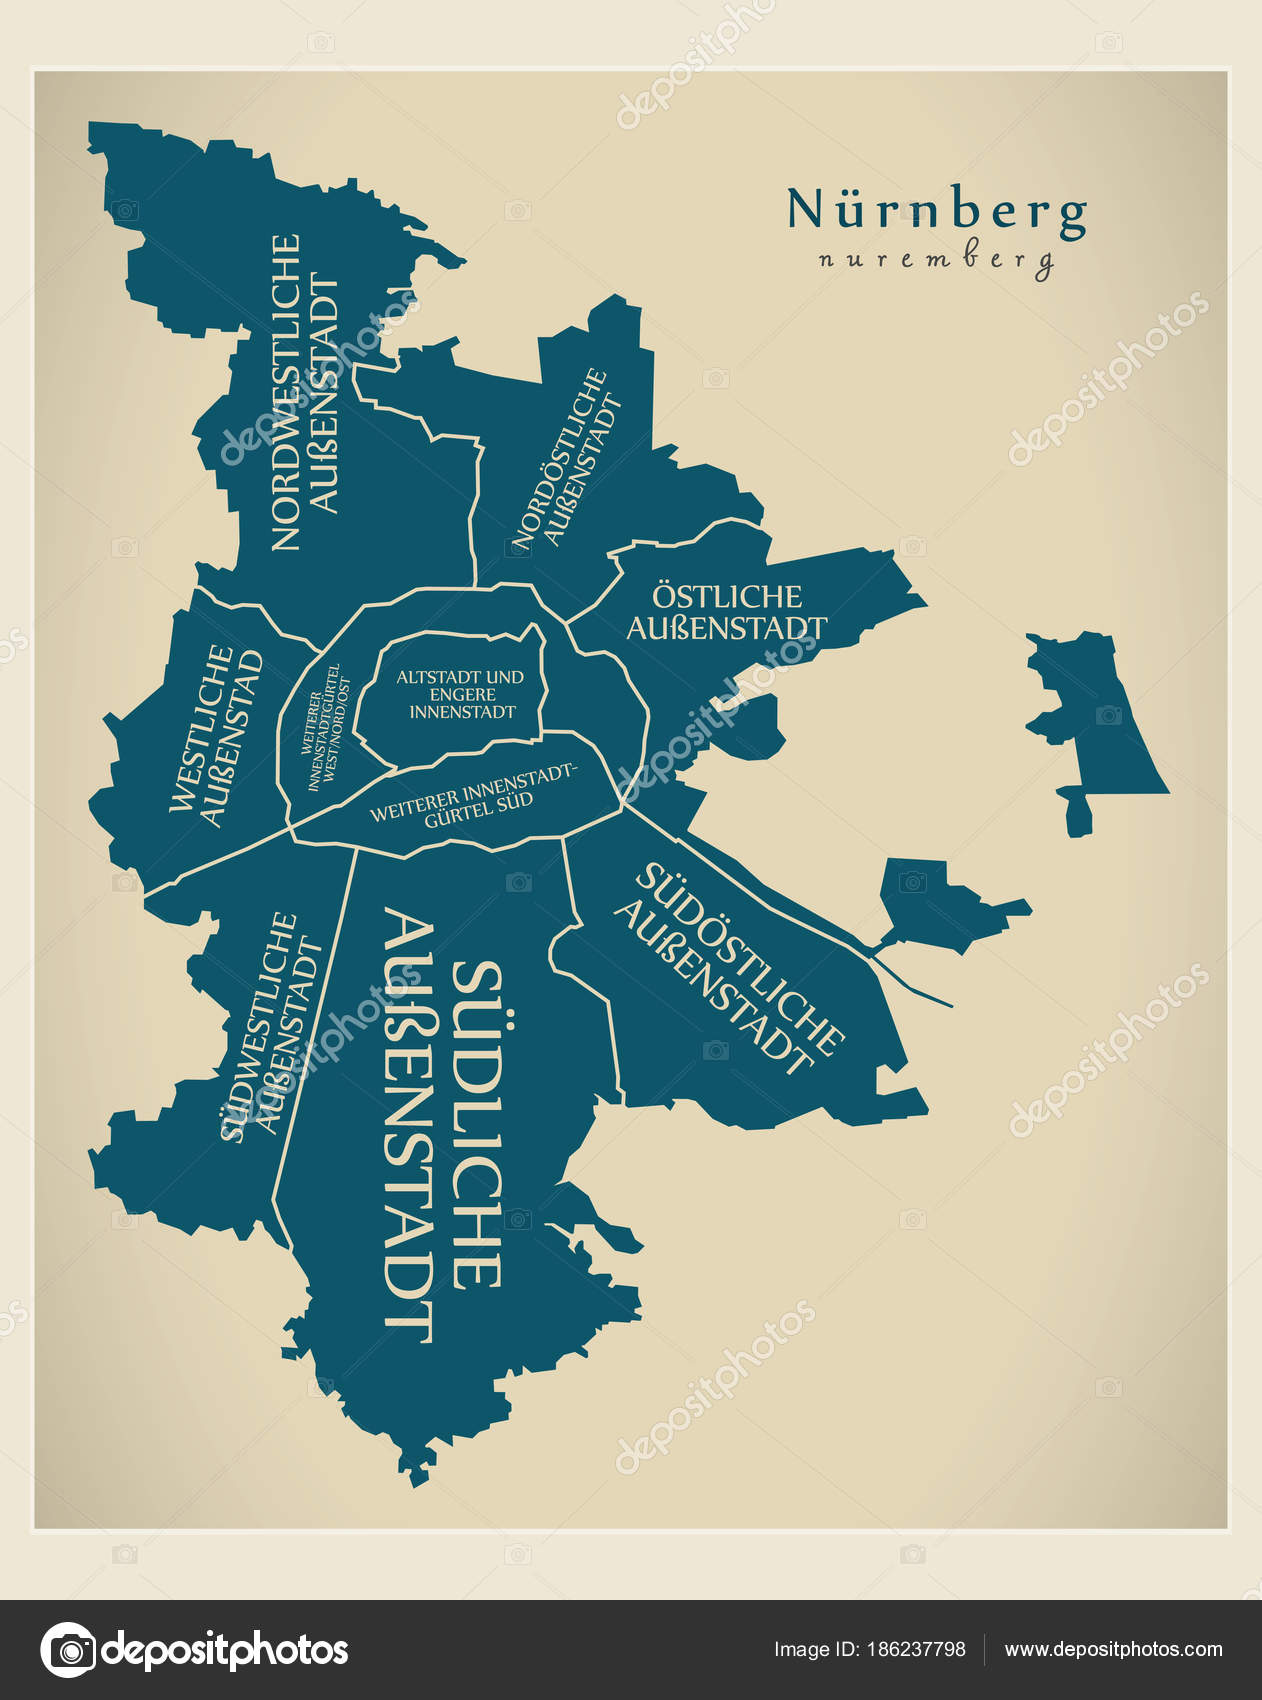 Modern City Map Nuremberg city of Germany with boroughs and ti